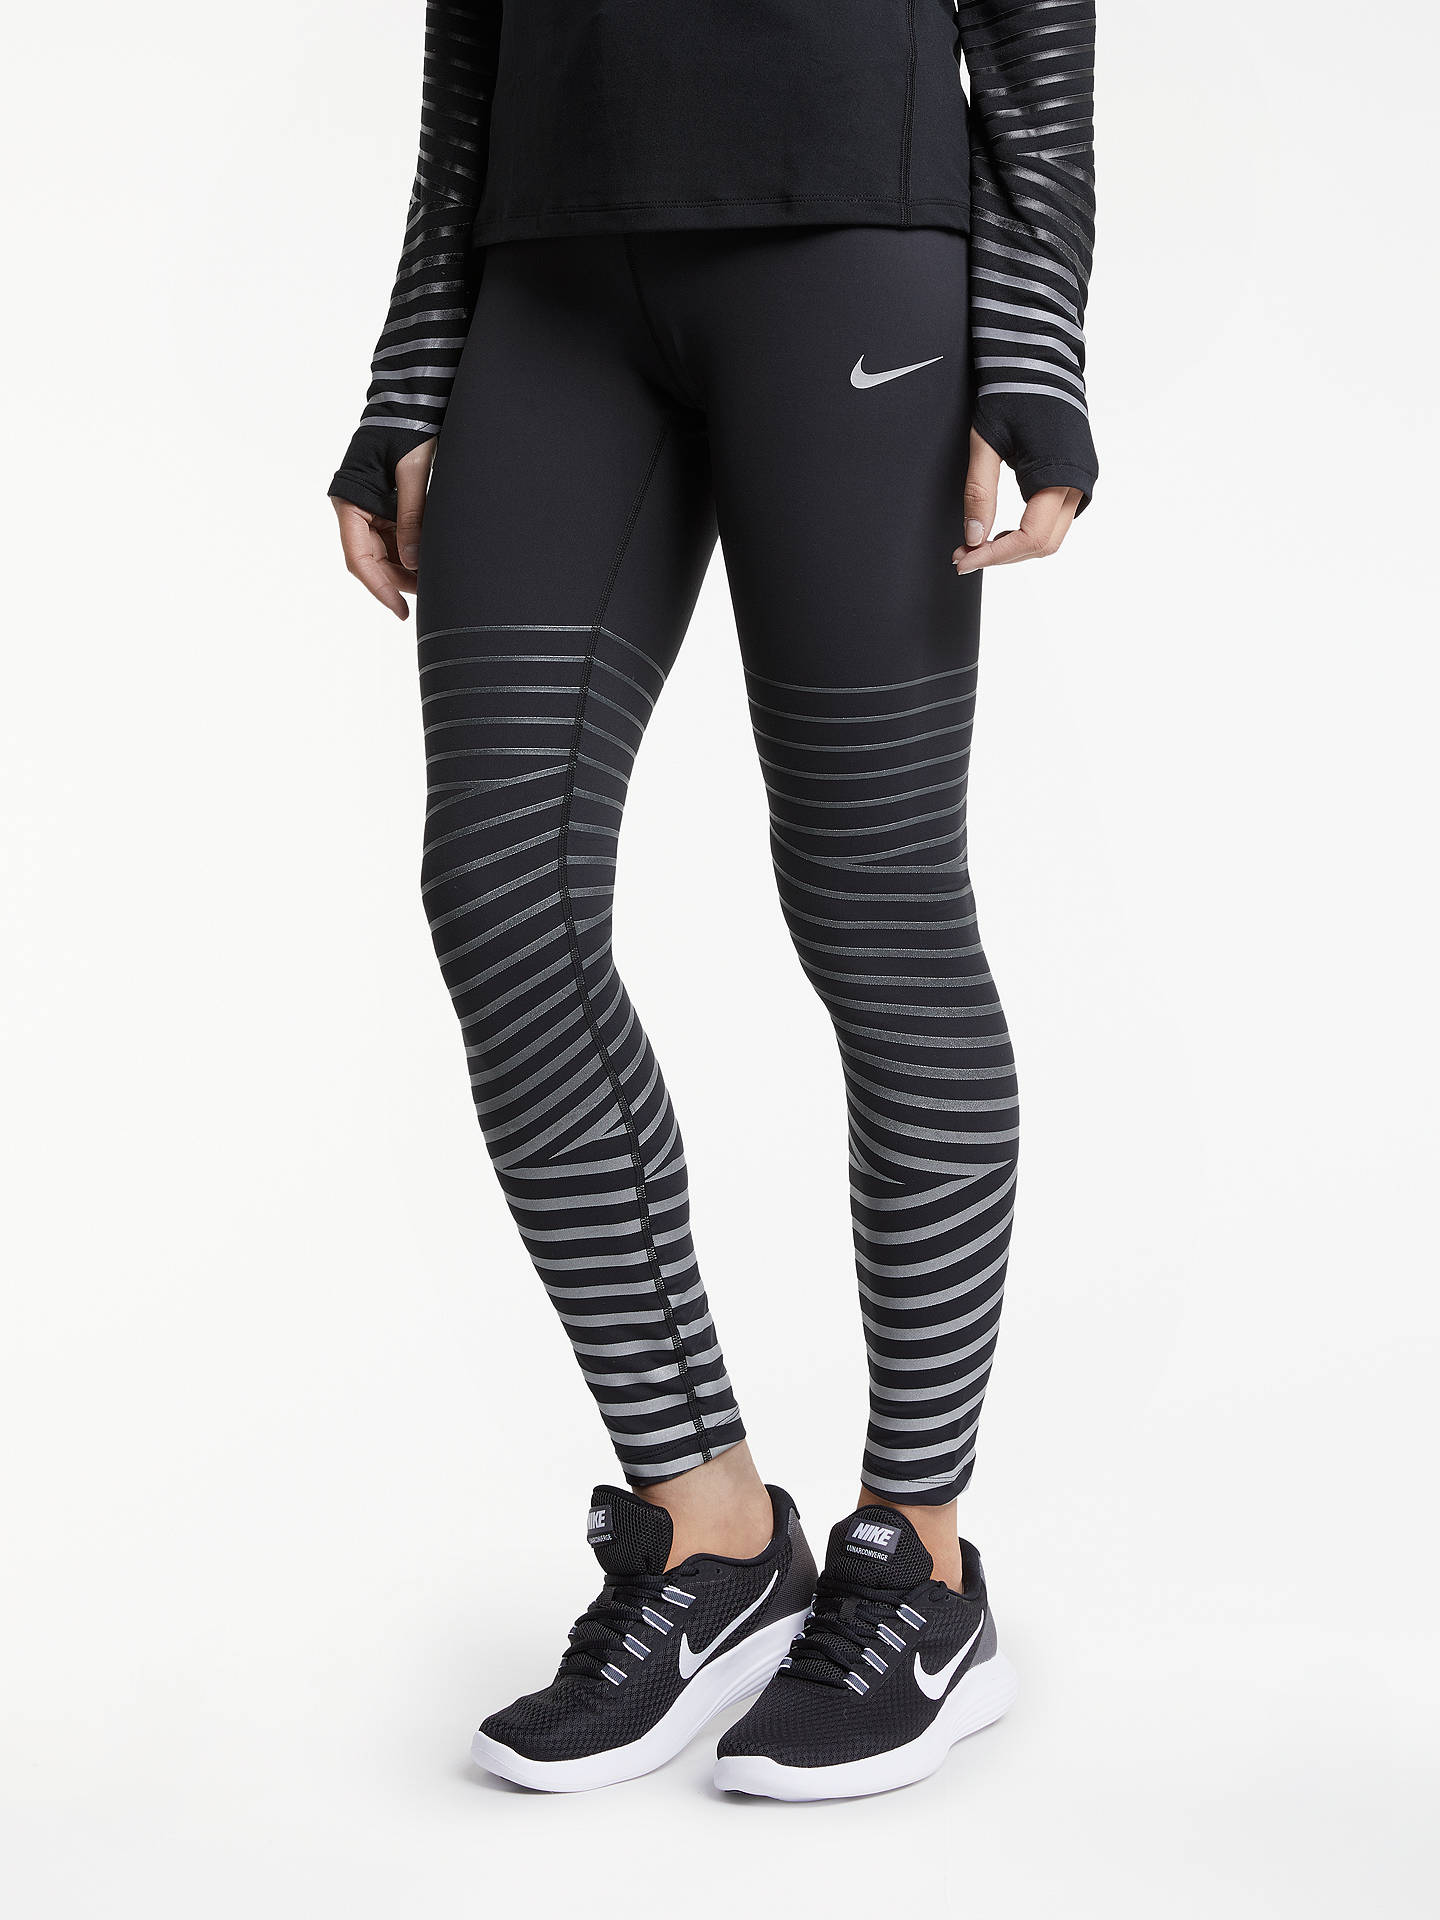 445be50ff4 Buy Nike Power Epic Lux Flash Running Tights, Black/Anthracite, XS Online  at ...